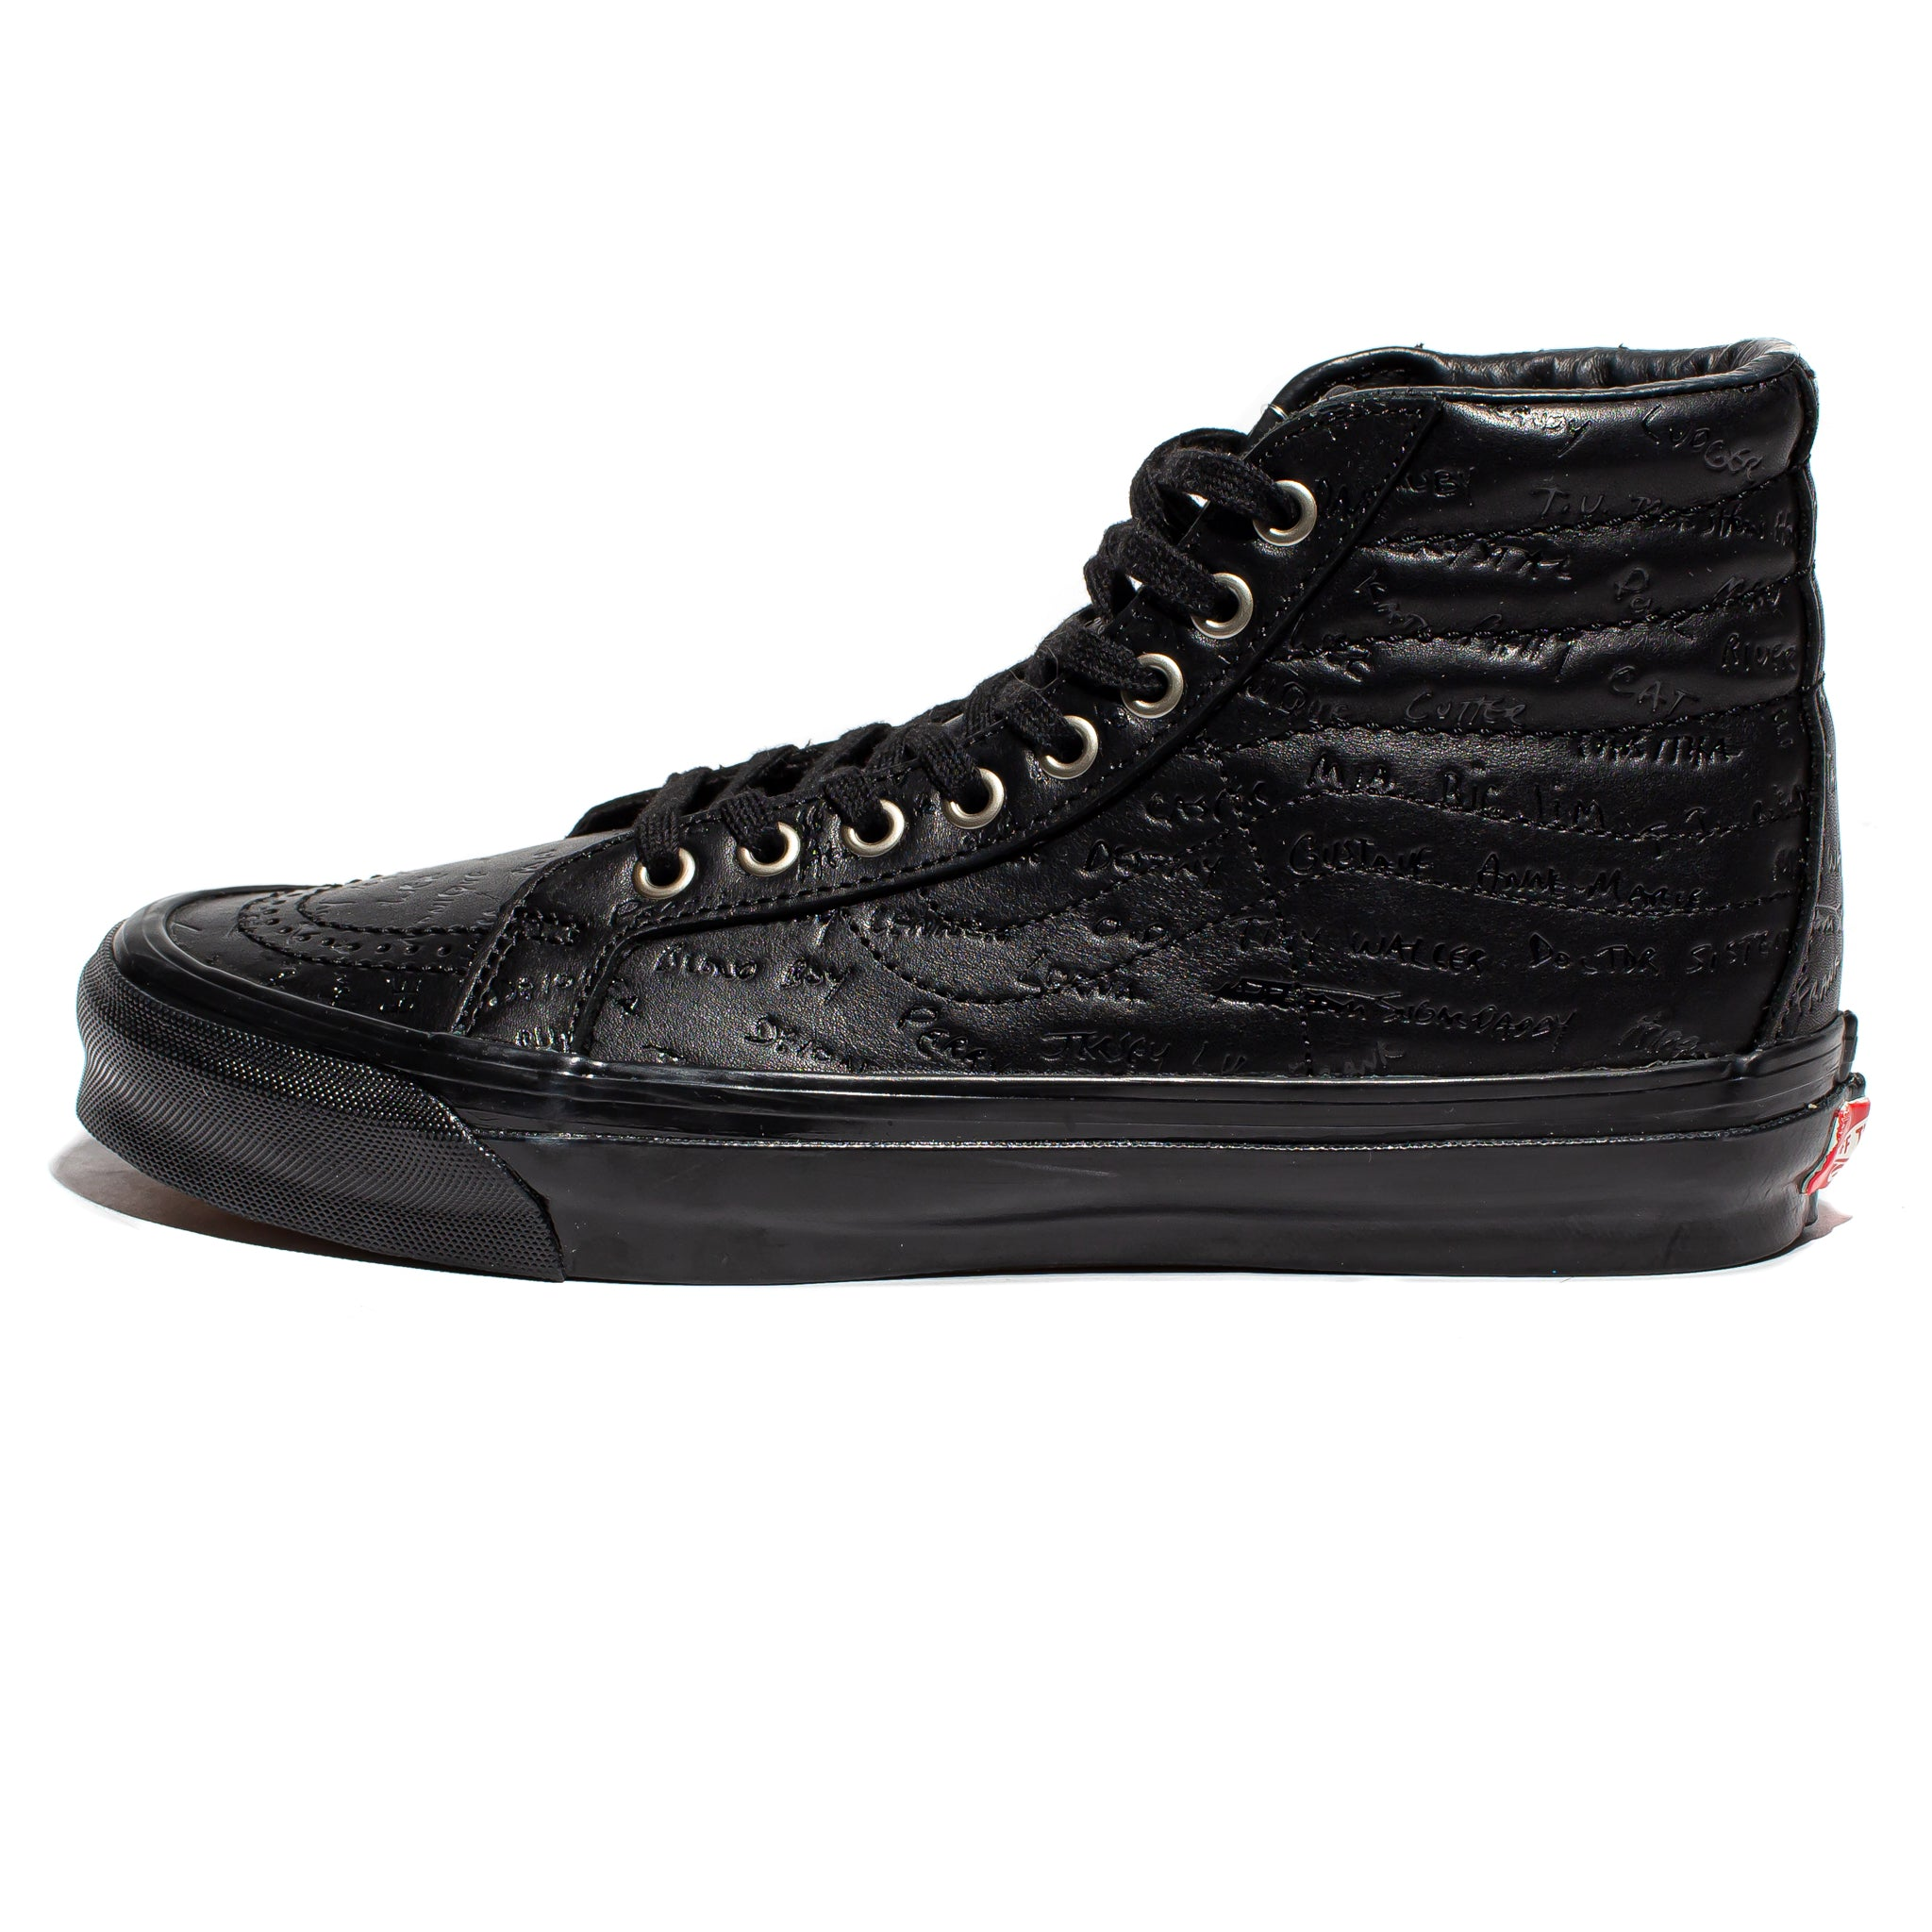 Vans Vault x Jim Goldberg OG SK8-HI LX 'Black Leather'